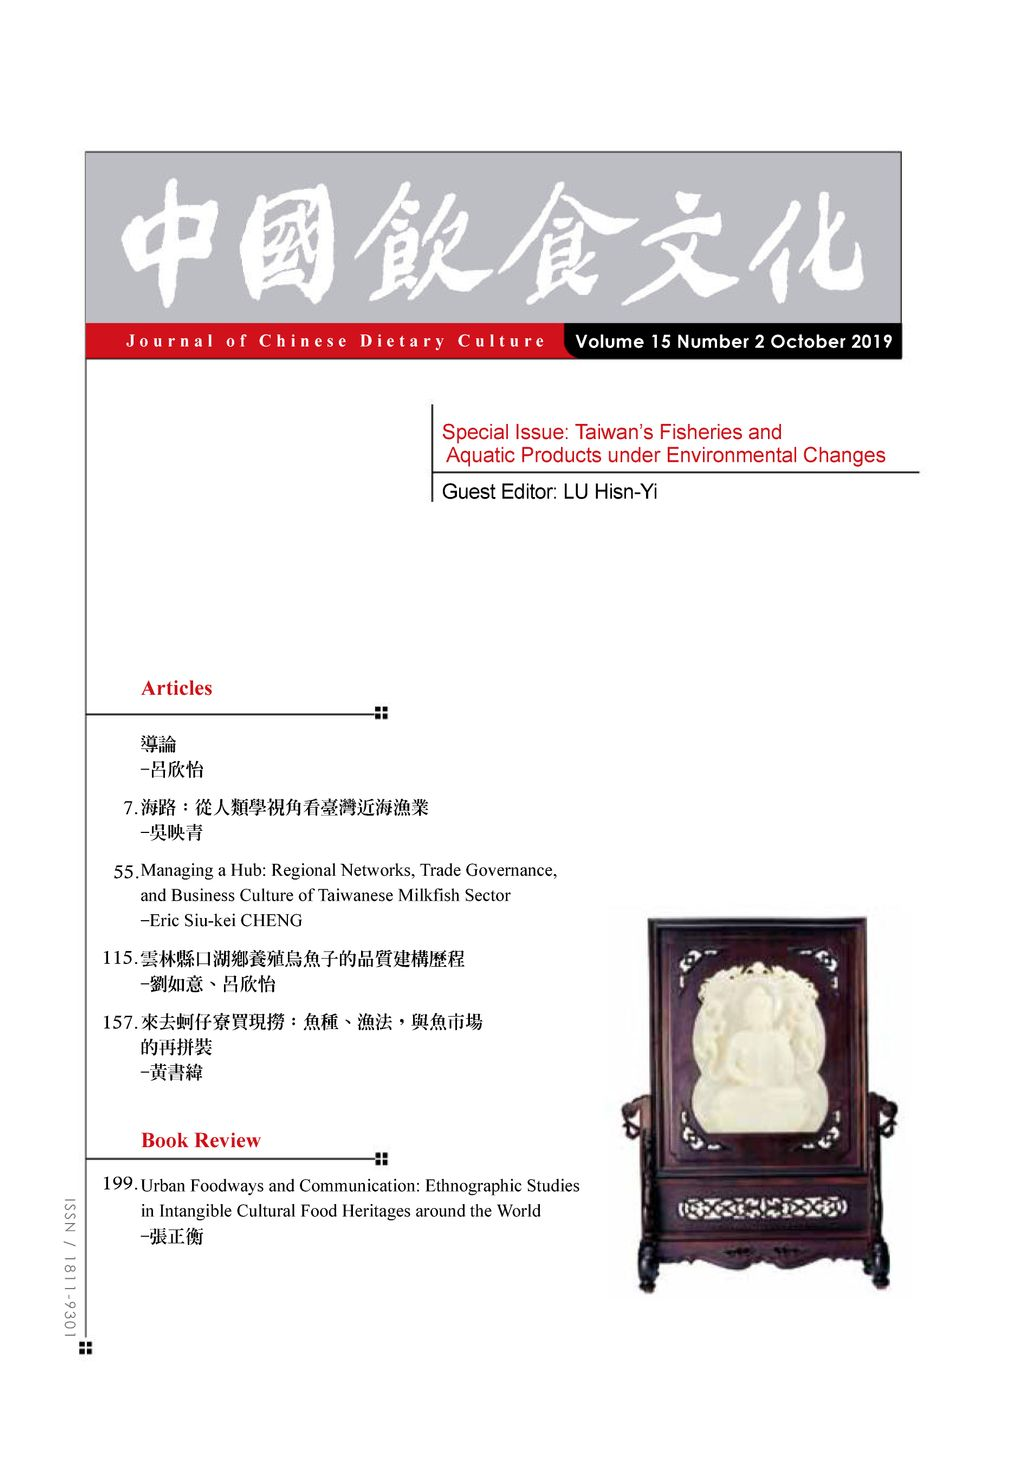 Journal of Chinese Dietary Culture 中國飲食文化 Digital Magazine | online subscription | MagazineCafe